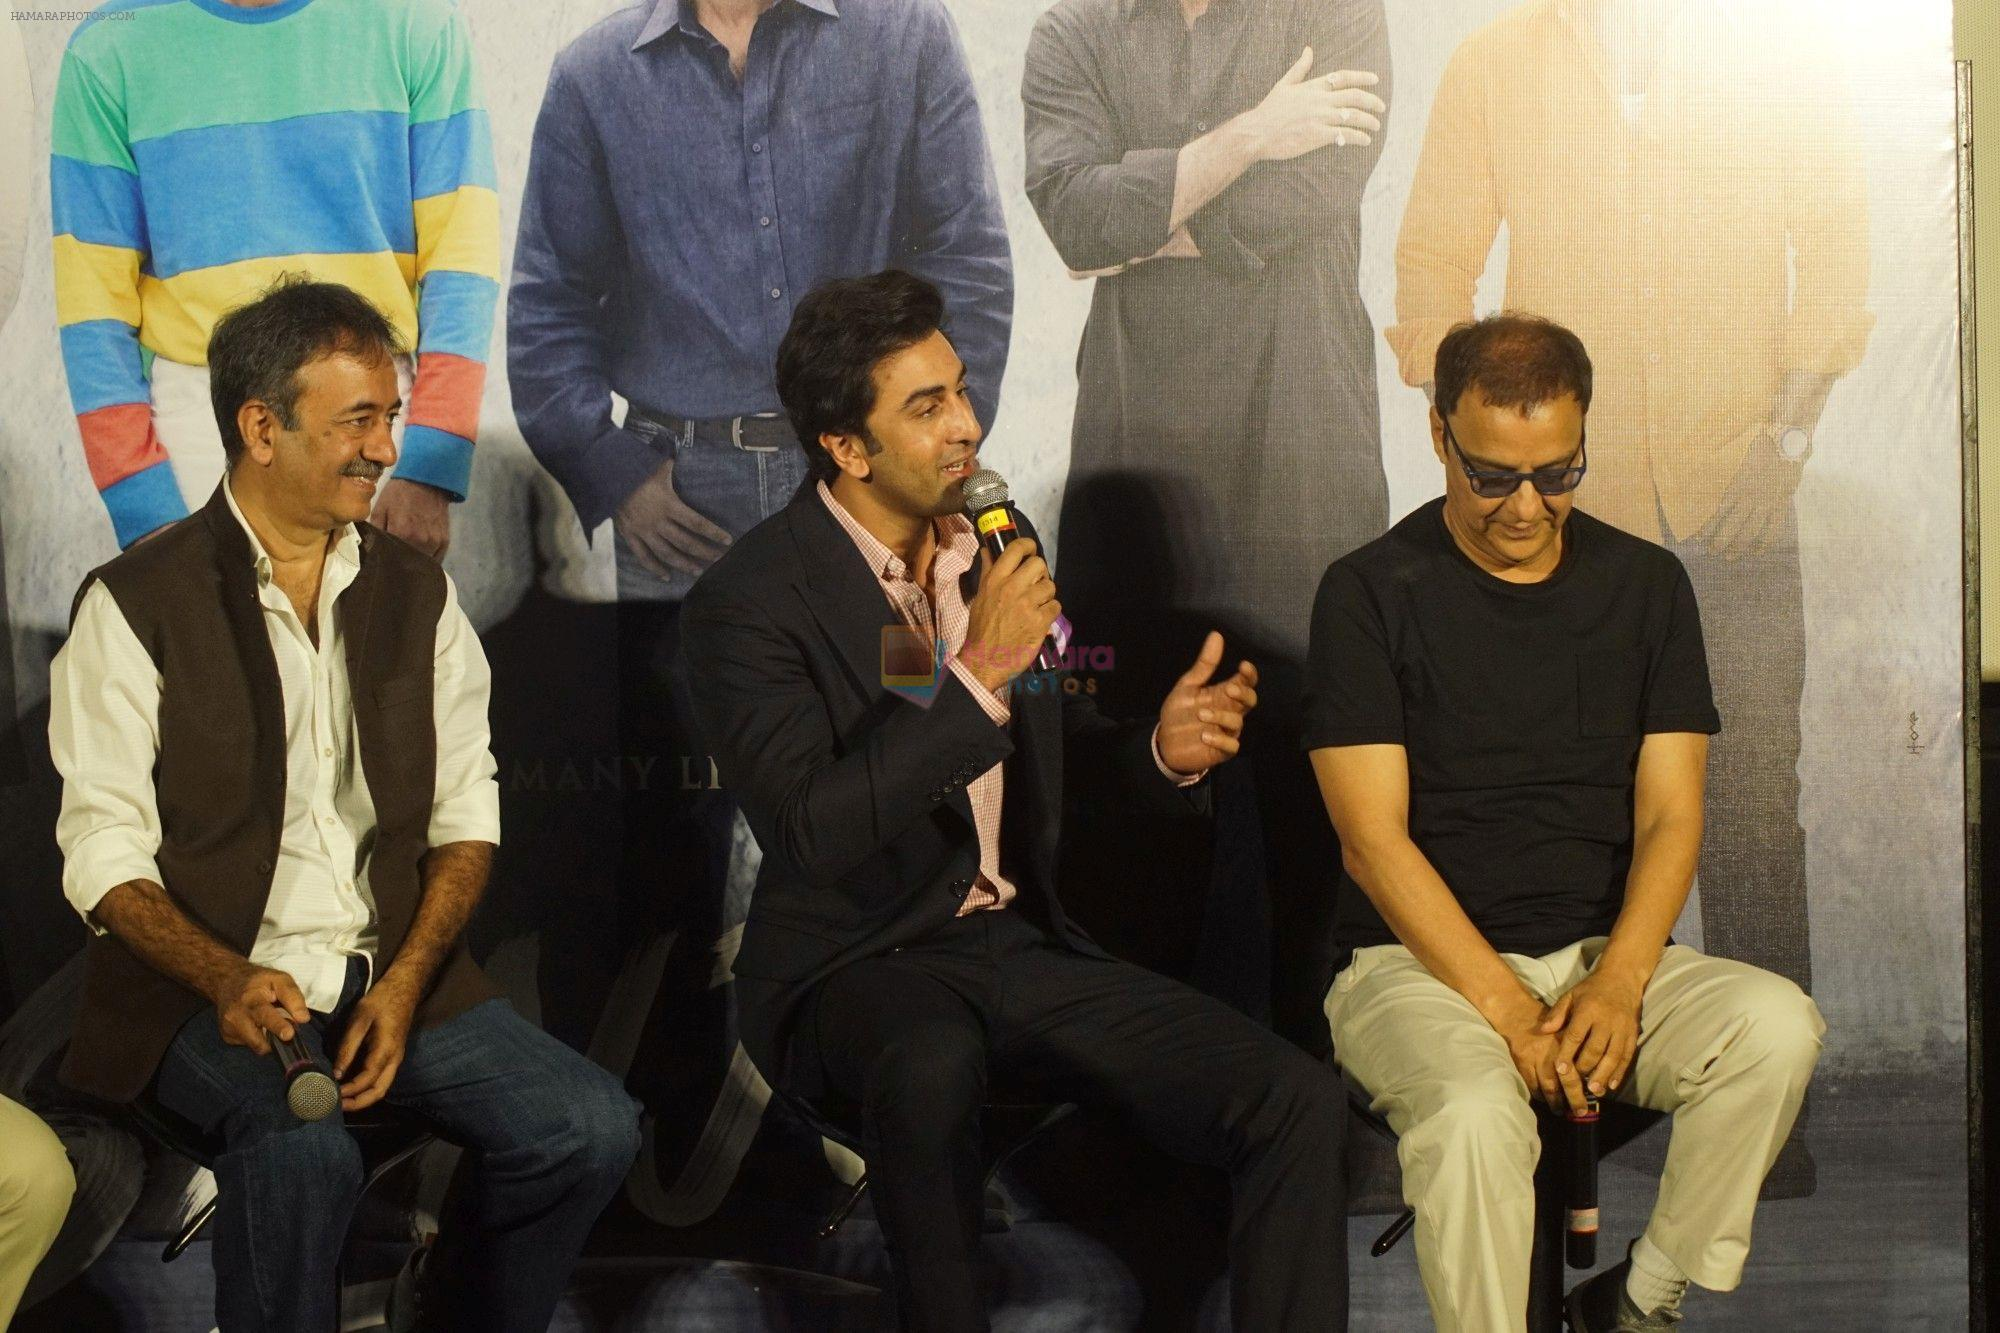 Rajkumar Hirani, Ranbir Kapoor, Vidhu Vinod Chopra at the Trailer Launch Of Film Sanju on 24th April 2018